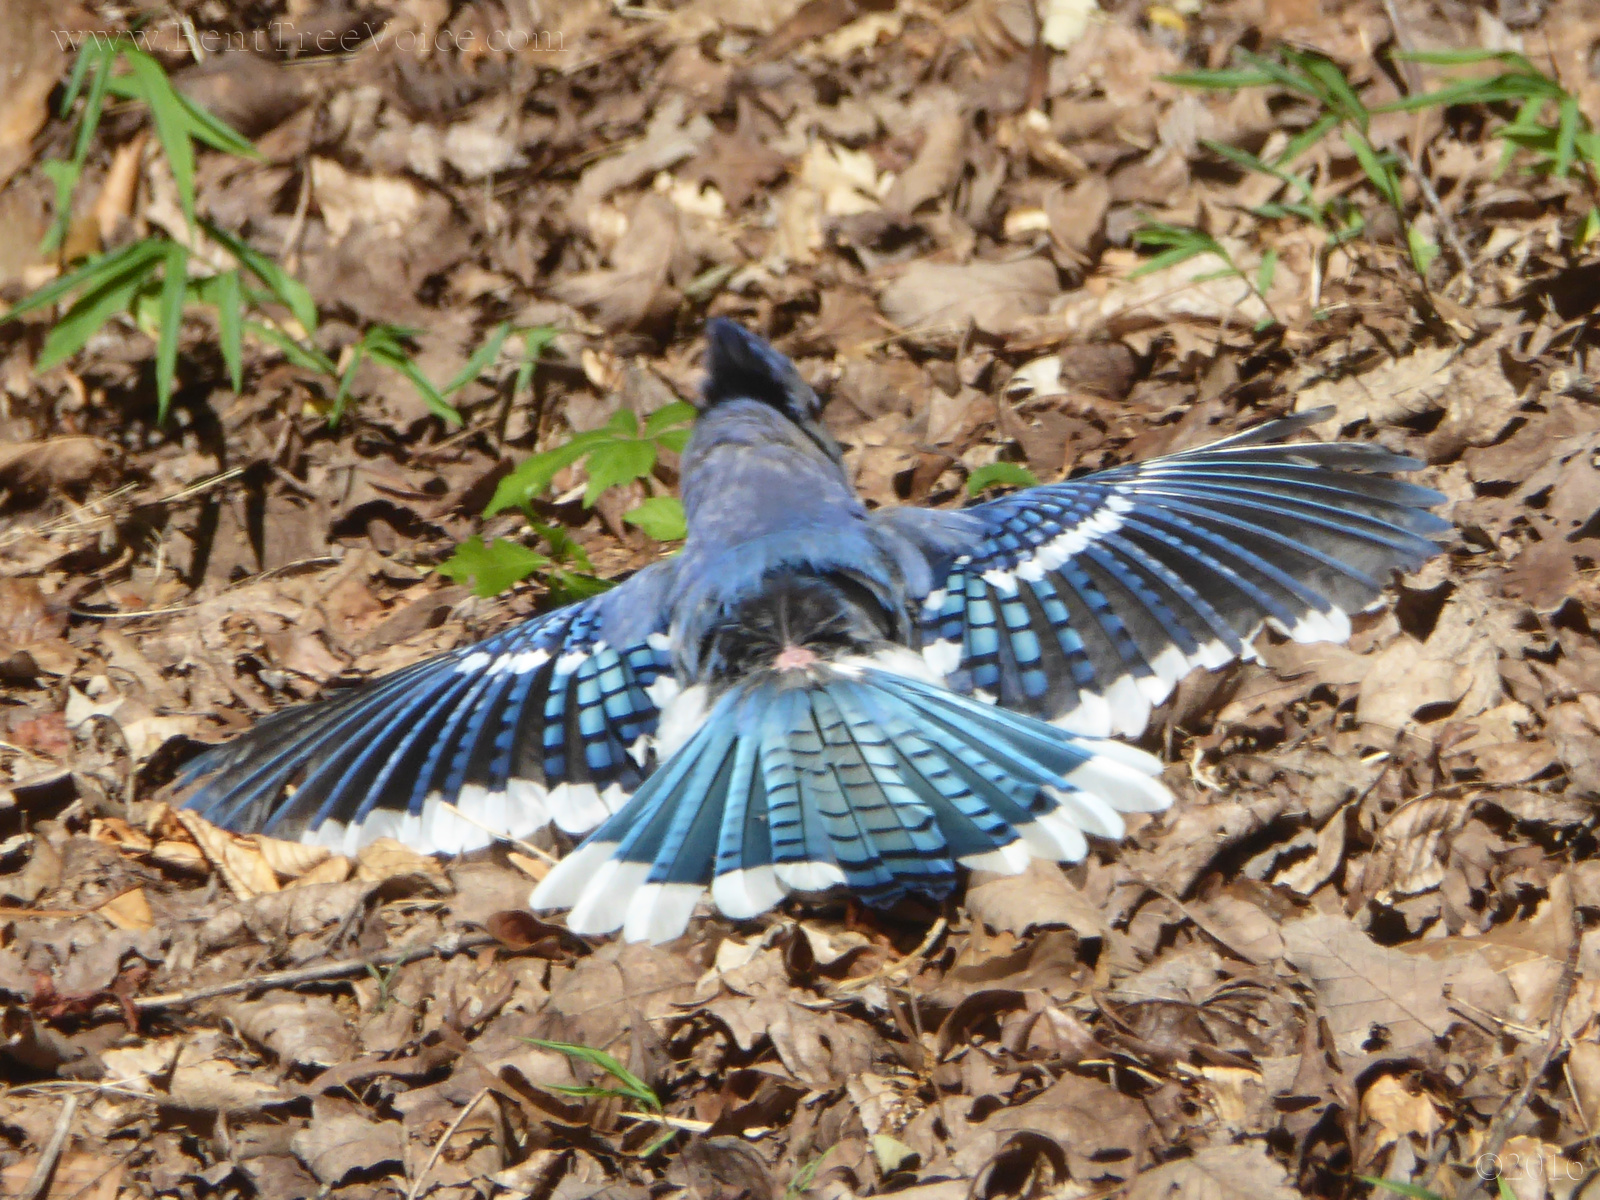 """June 29, 2016 - Blue jay """"spread-eagle"""" on the ground"""